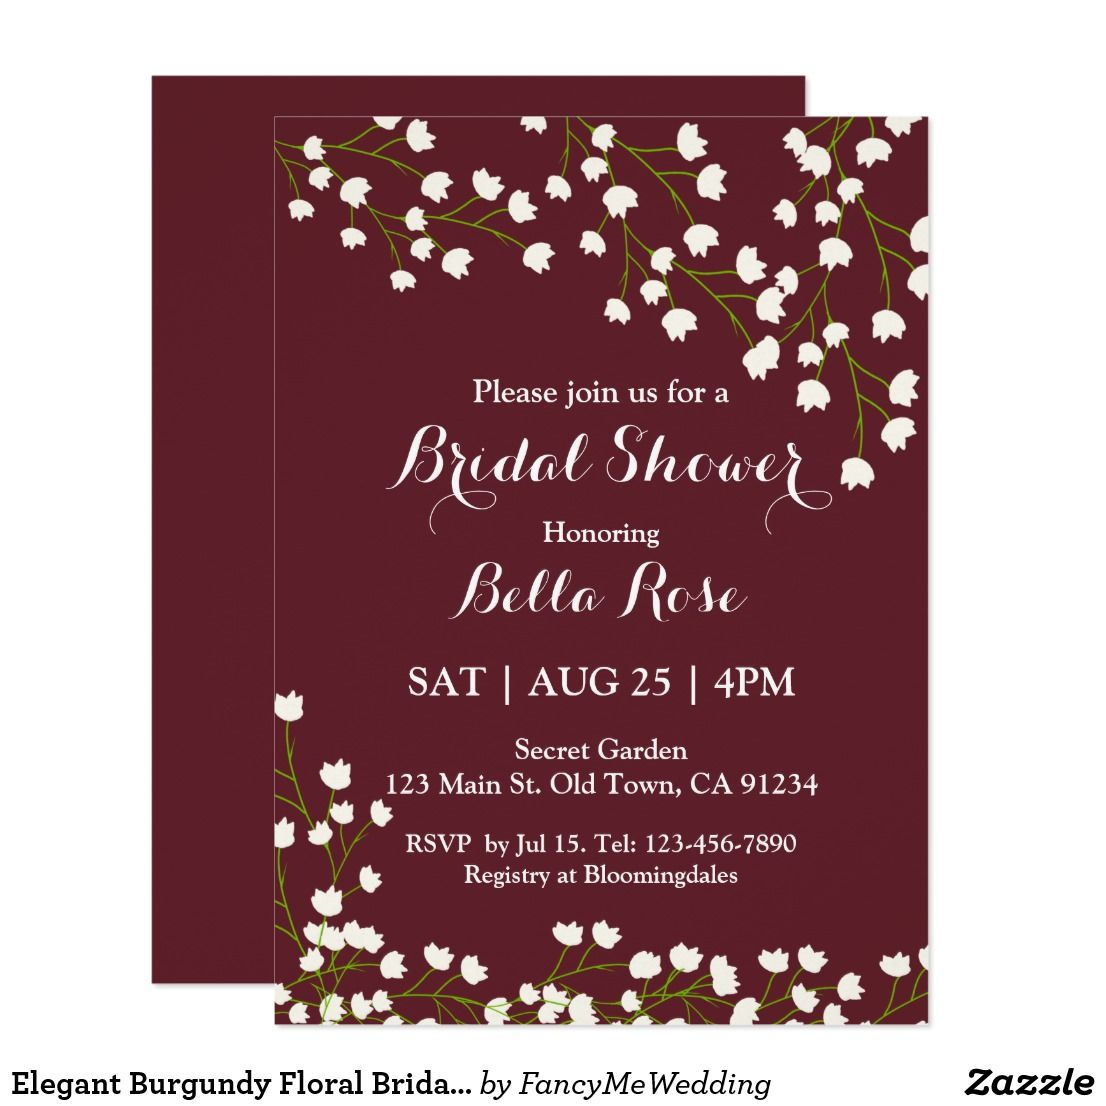 Elegant Burgundy Floral Bridal Shower Invitations | Pinterest ...